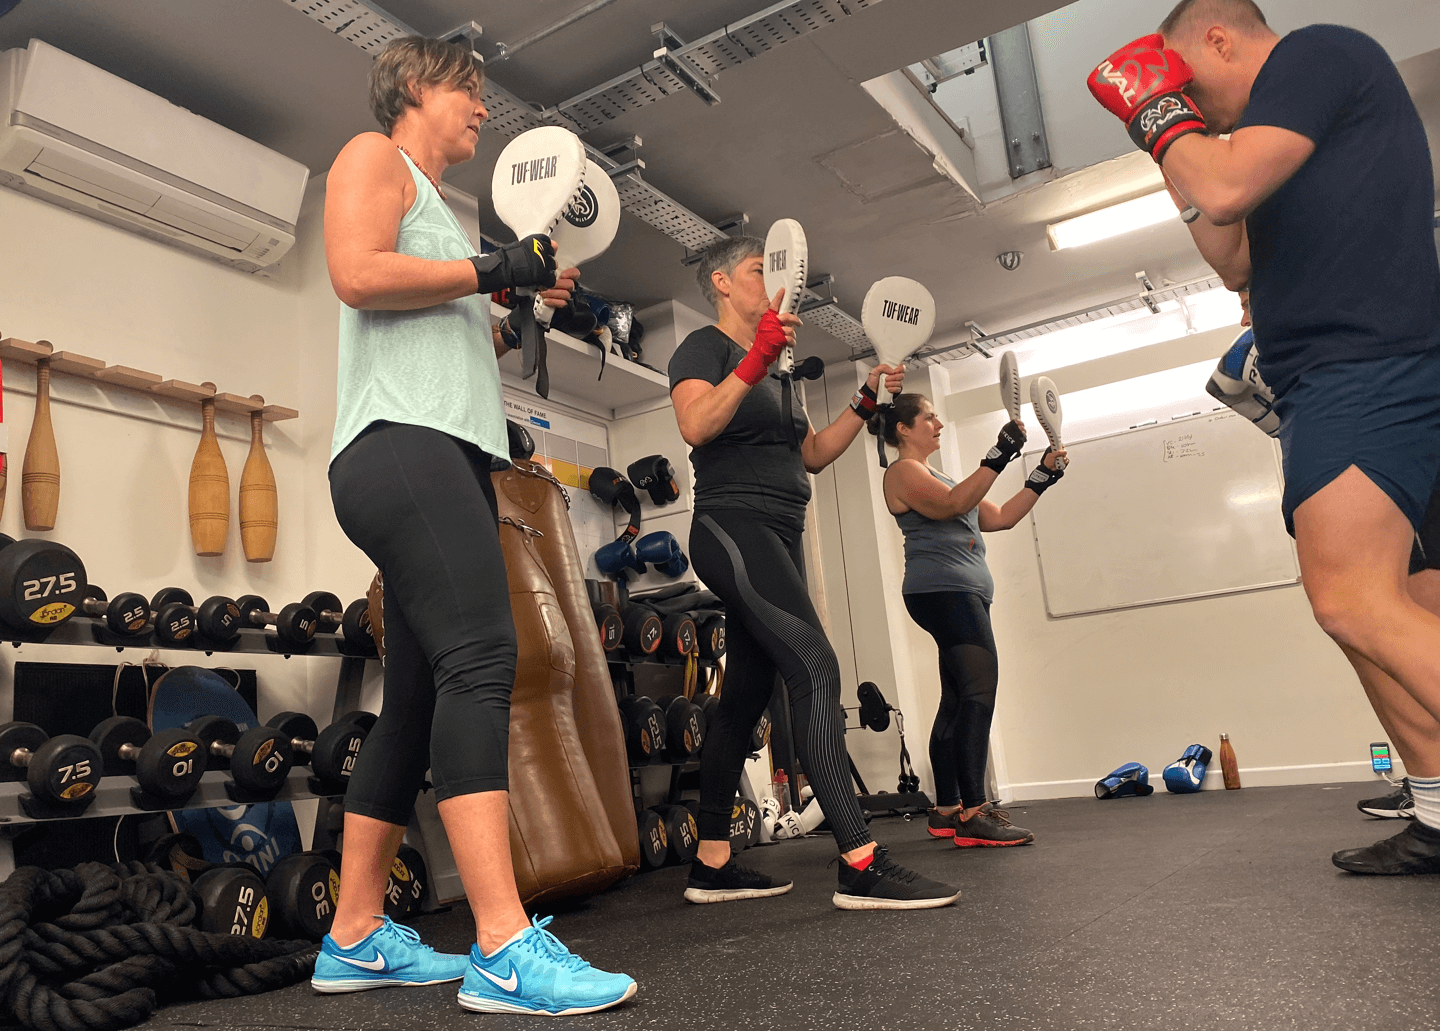 Group training with boxing pads